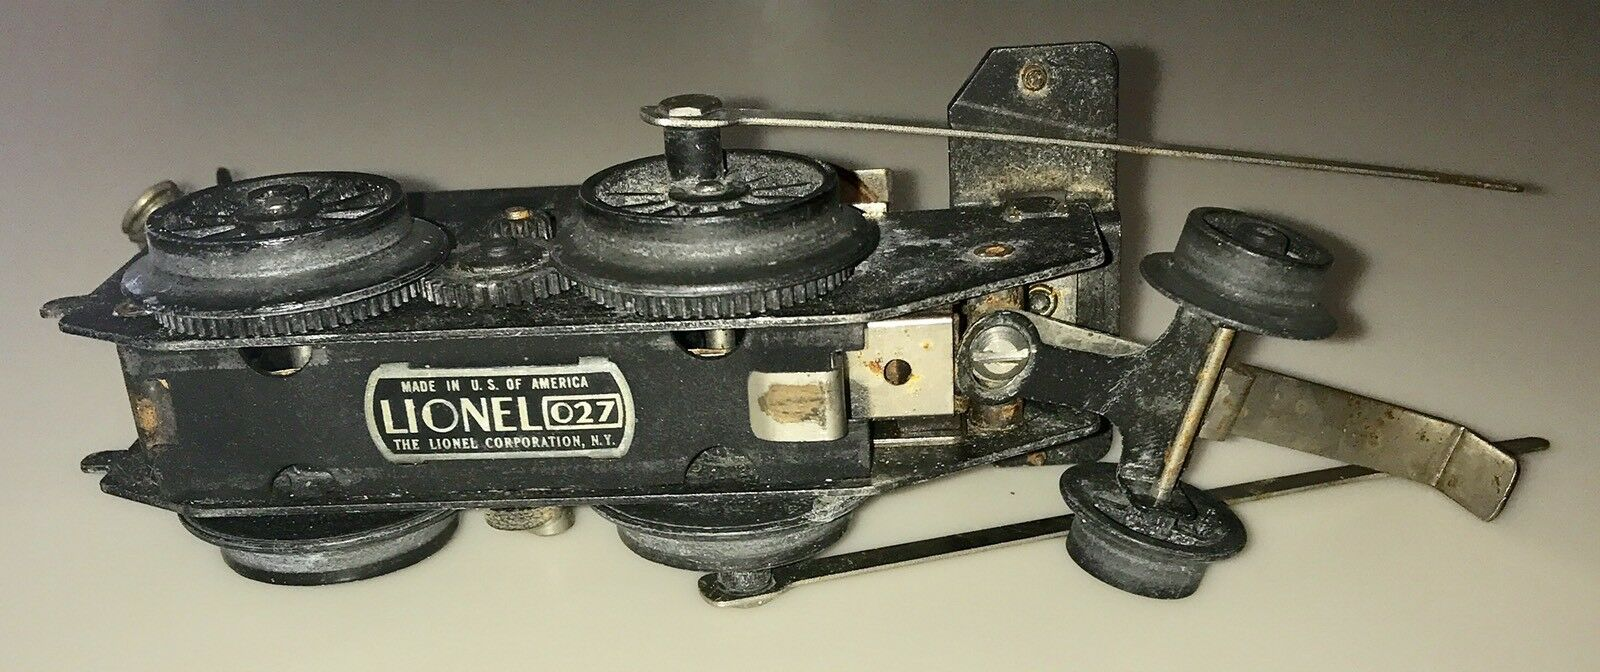 VINTAGE LIONEL TRAIN O27 LOCOMOTIVE INNER MOTOR PARTS ONLY